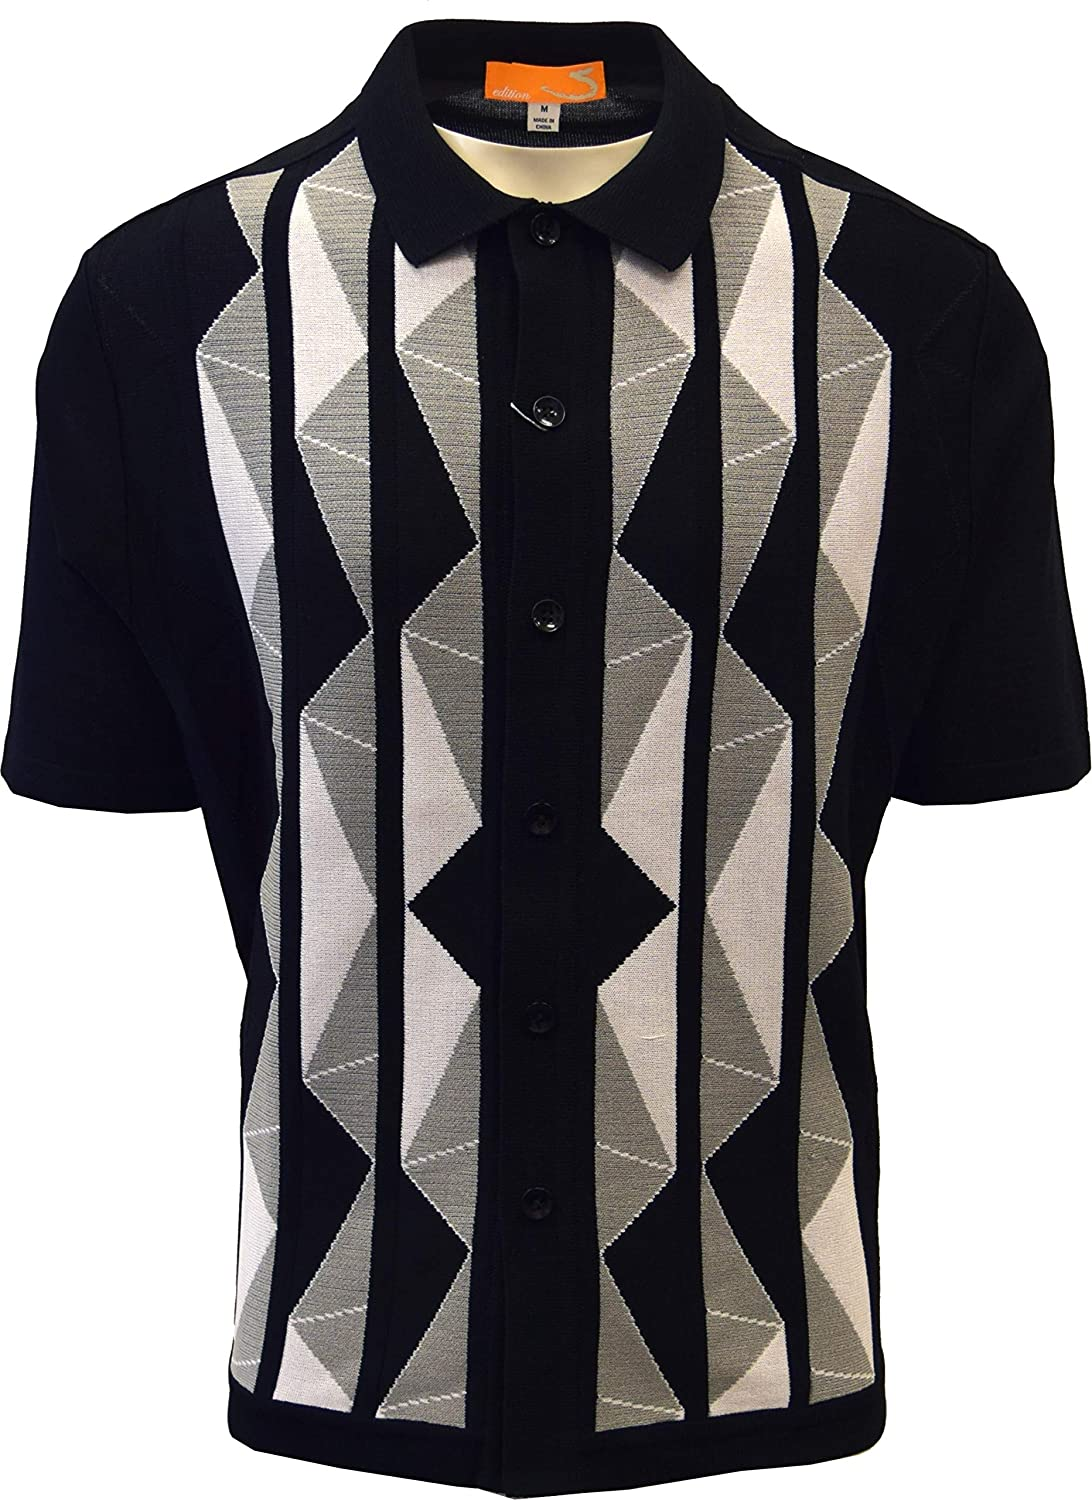 Retro Clothing for Men | Vintage Men's Fashion Edition-S Mens Short Sleeve Knit Shirt- California Rockabilly Style Aztec Triangle Design $49.00 AT vintagedancer.com